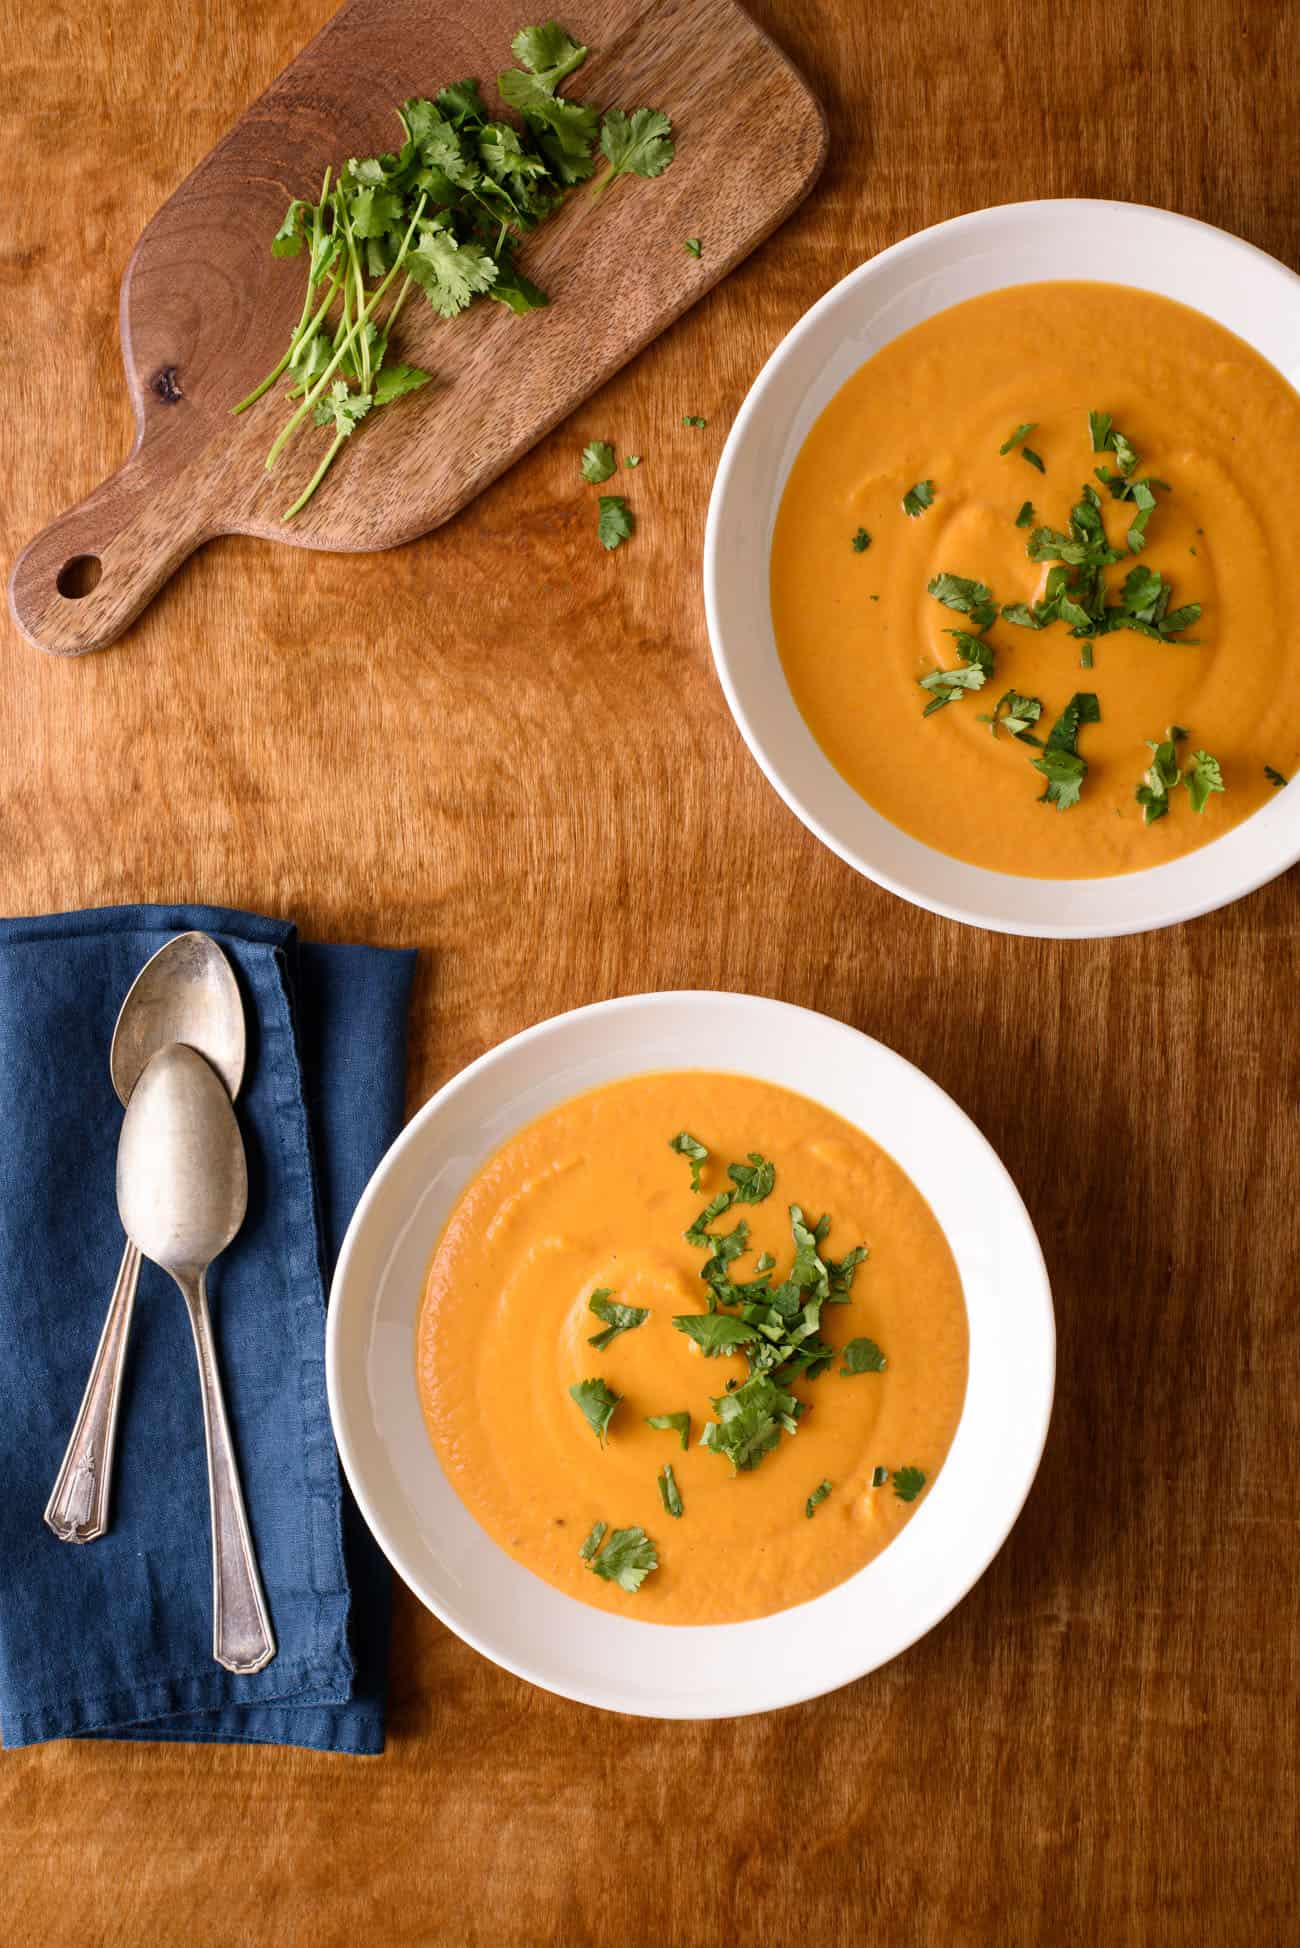 Two bowls of curried butternut squash soup with cilantro on a wooden table